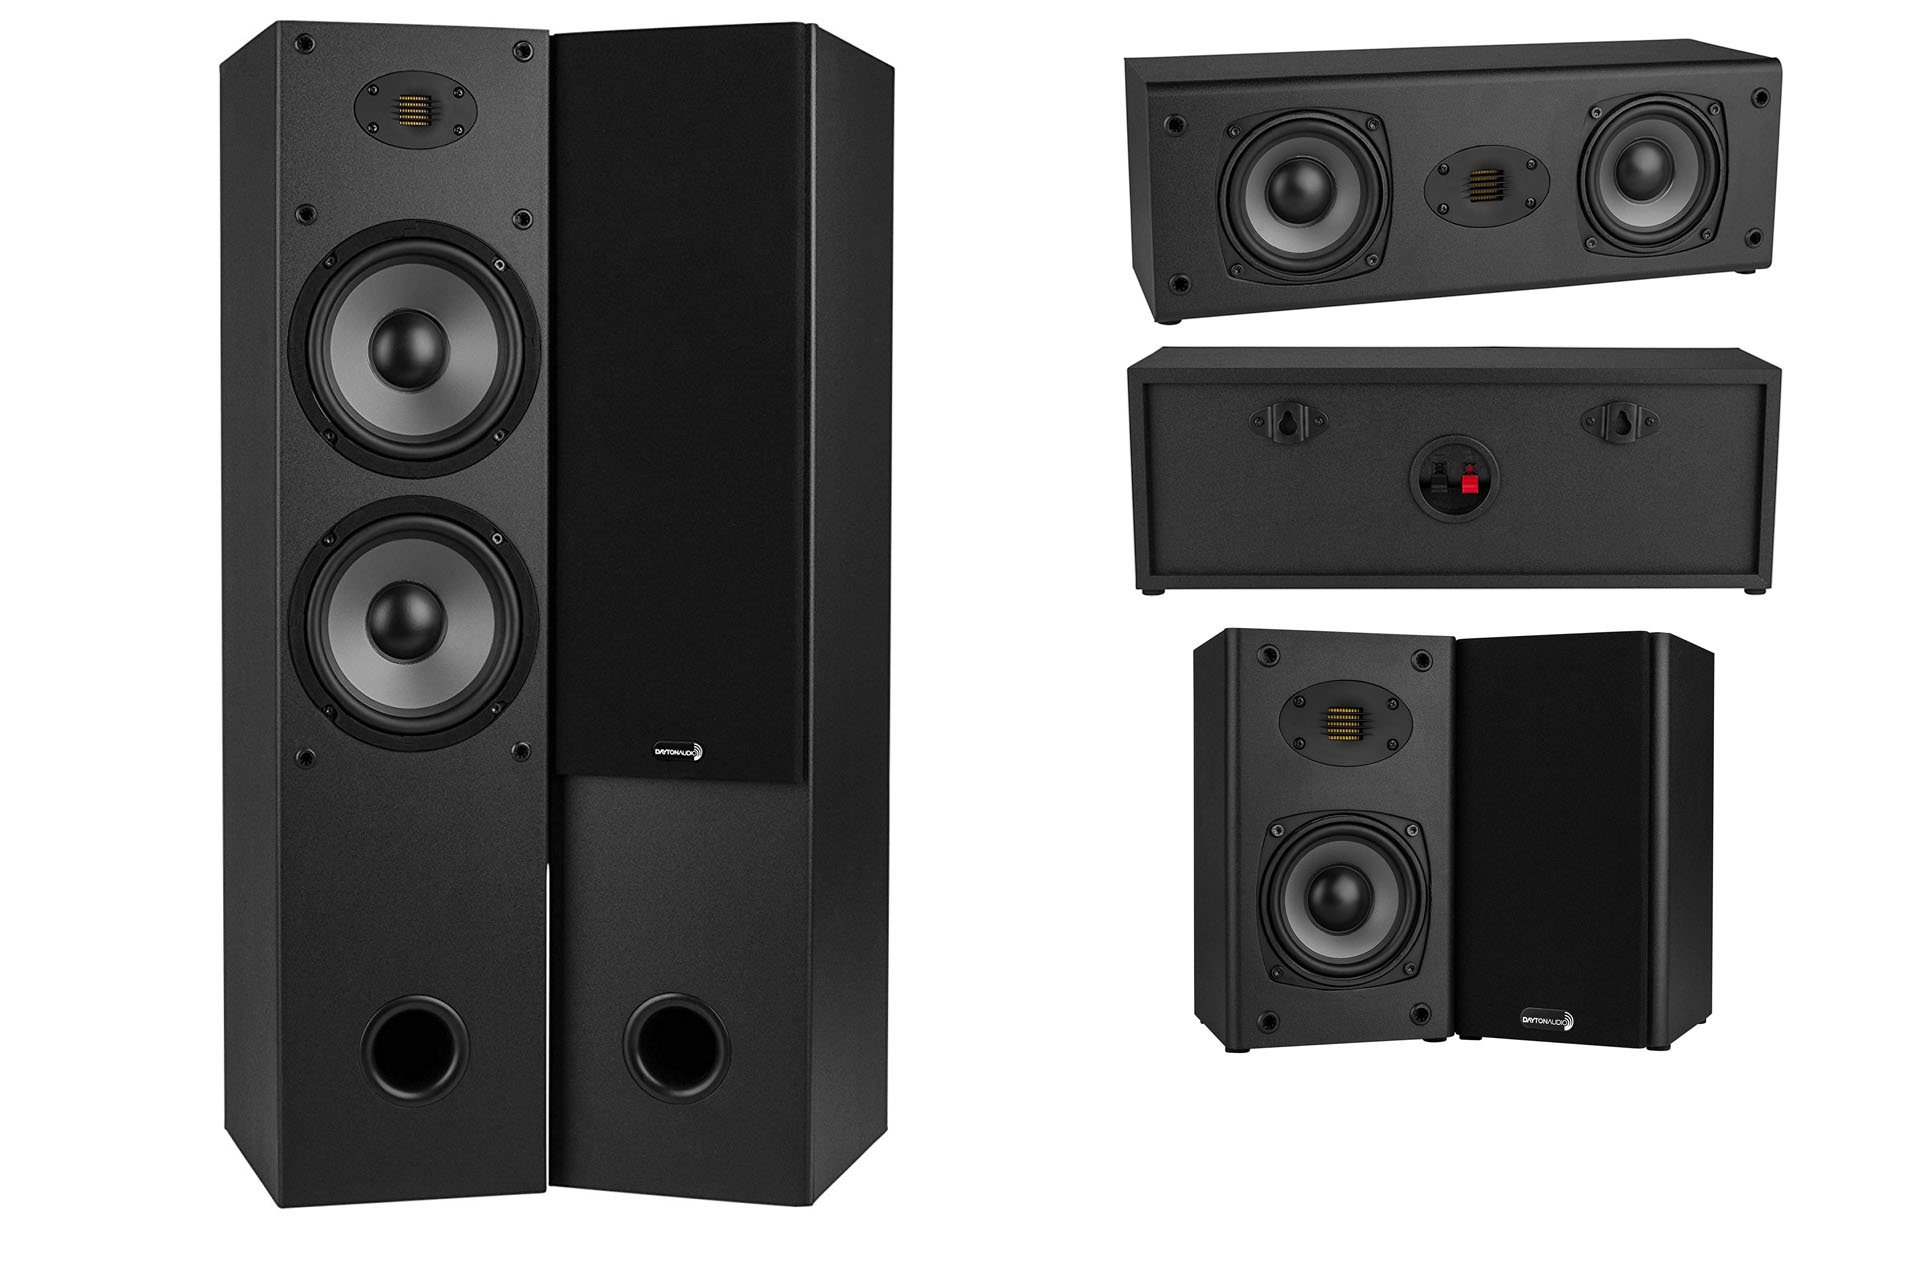 Dayton Audio Announces B452-AIR, T652-AIR and C452-AIR Speakers